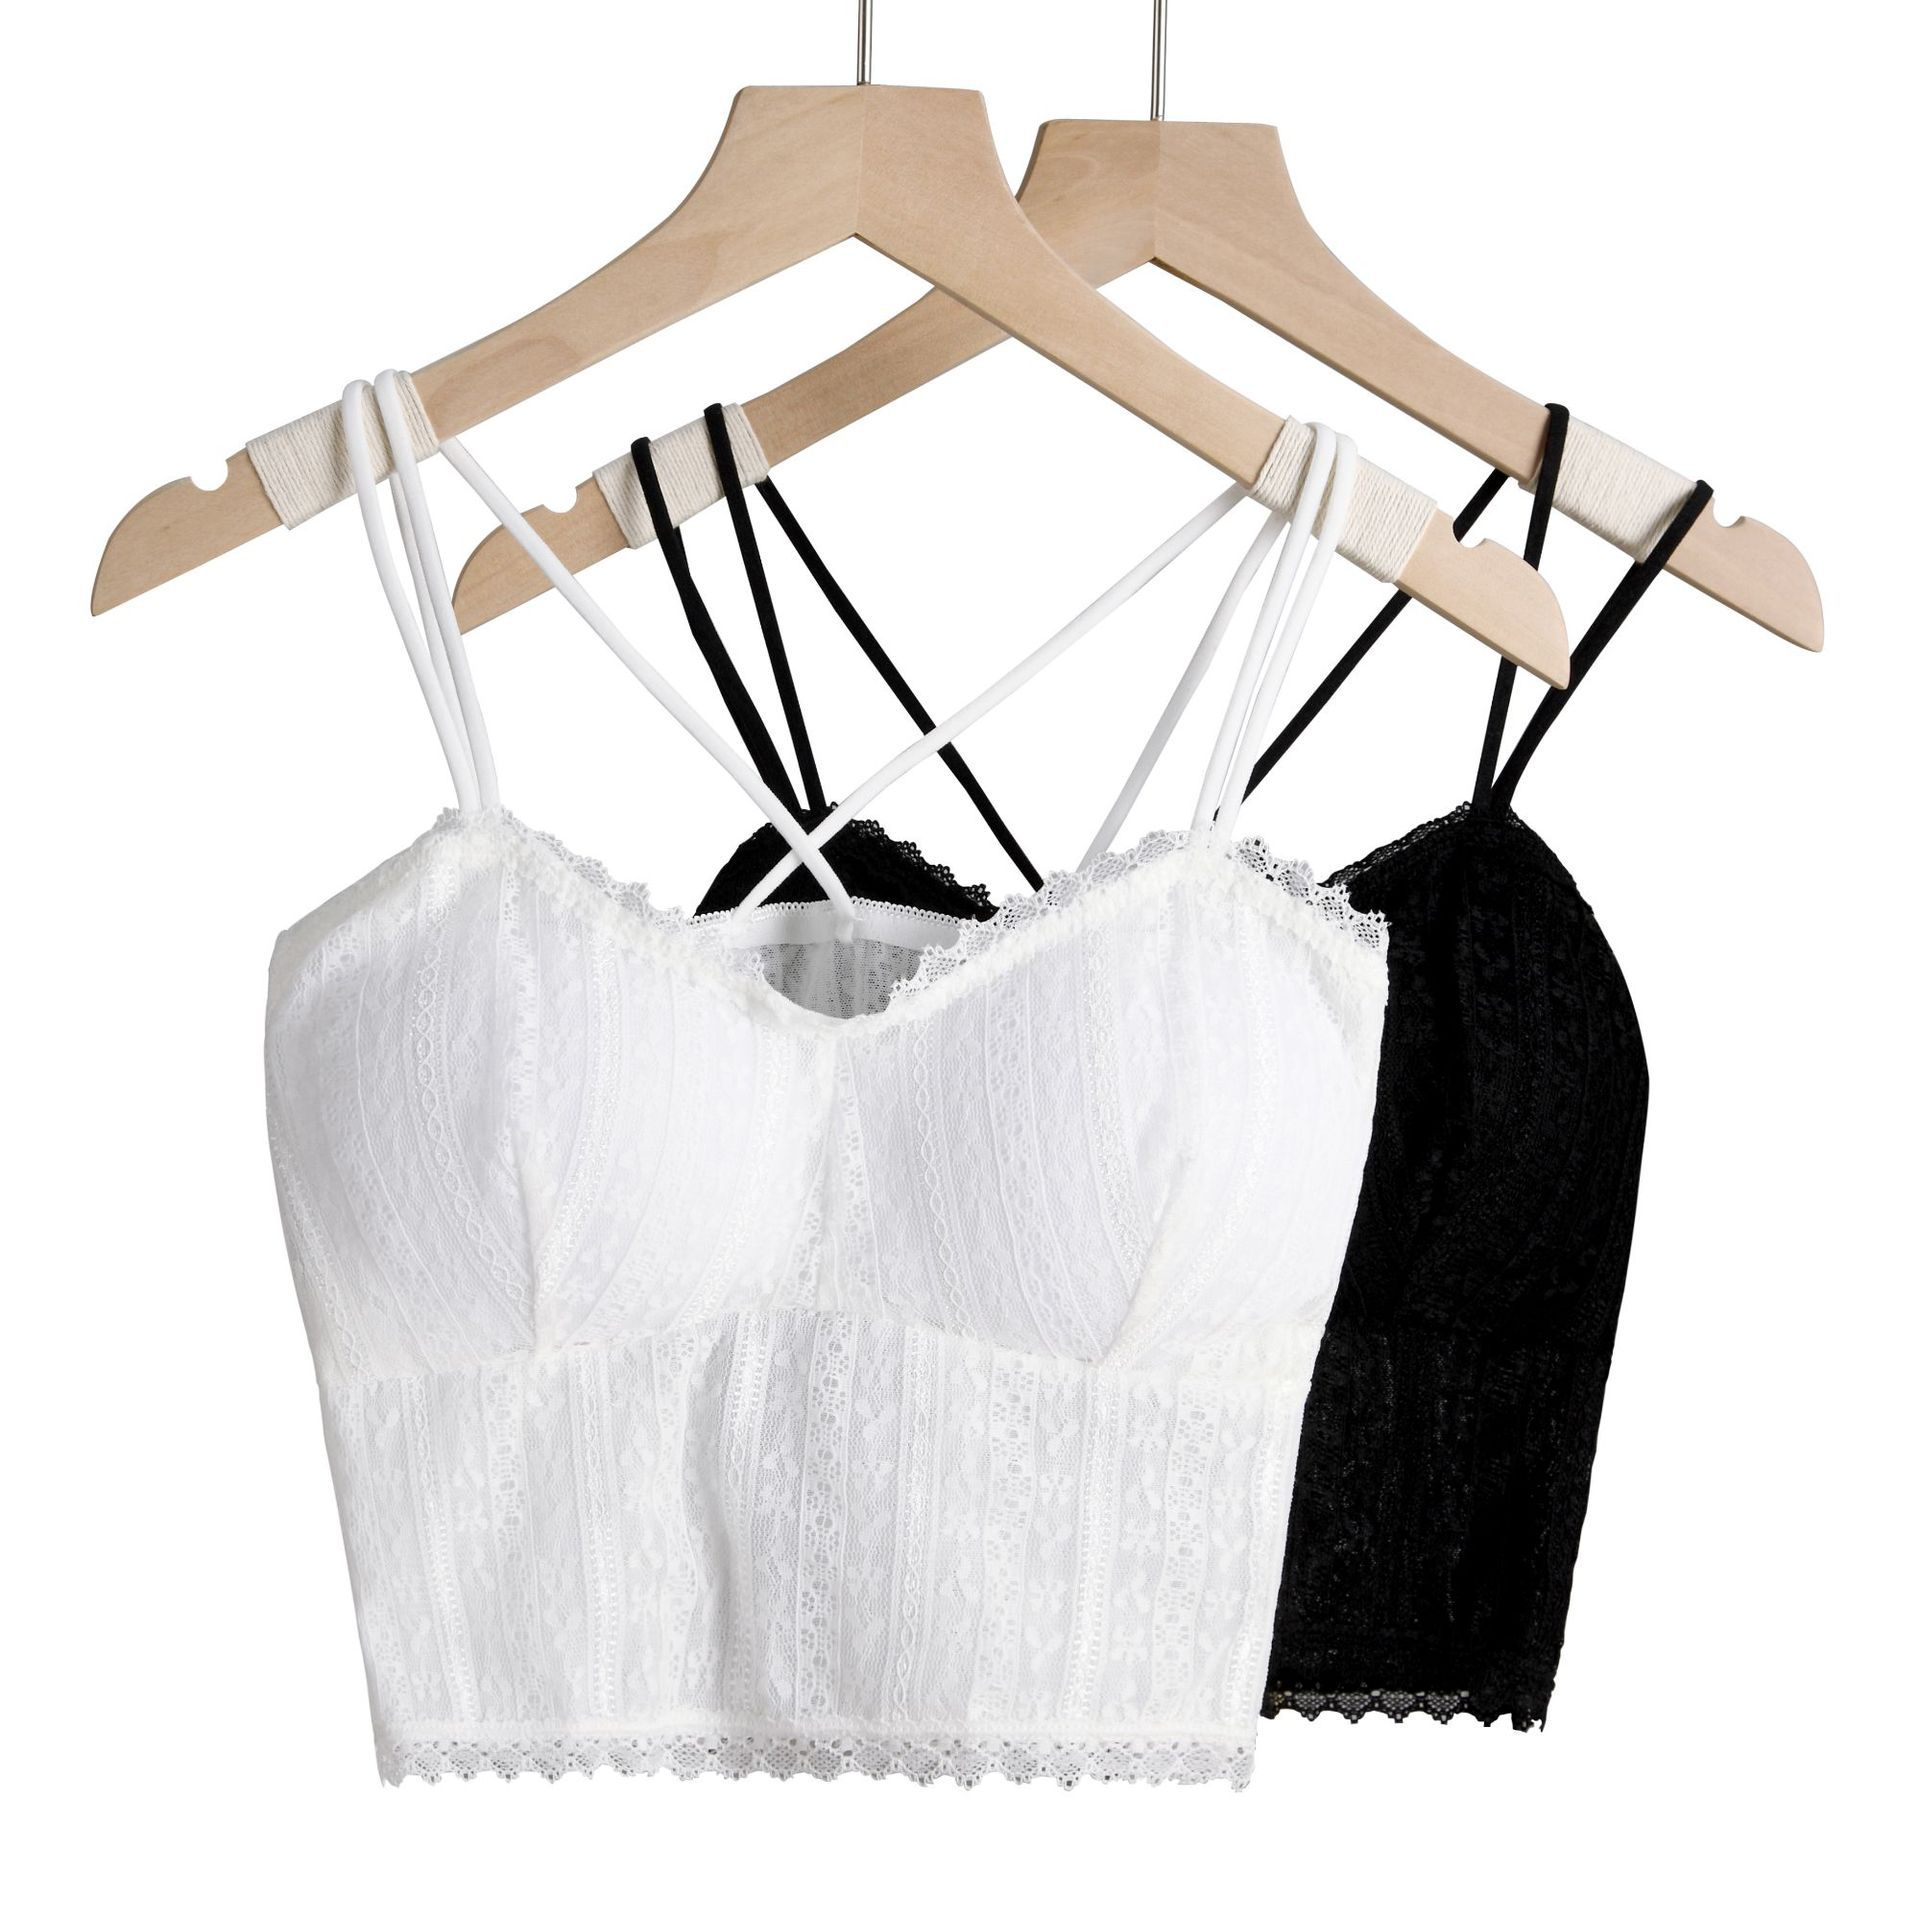 Women Lace Bralette Floral Lace Tanks Top Sexy Cami Tops Female Beauty Back Underwear Lingerie Padded Short Cropped Camisole